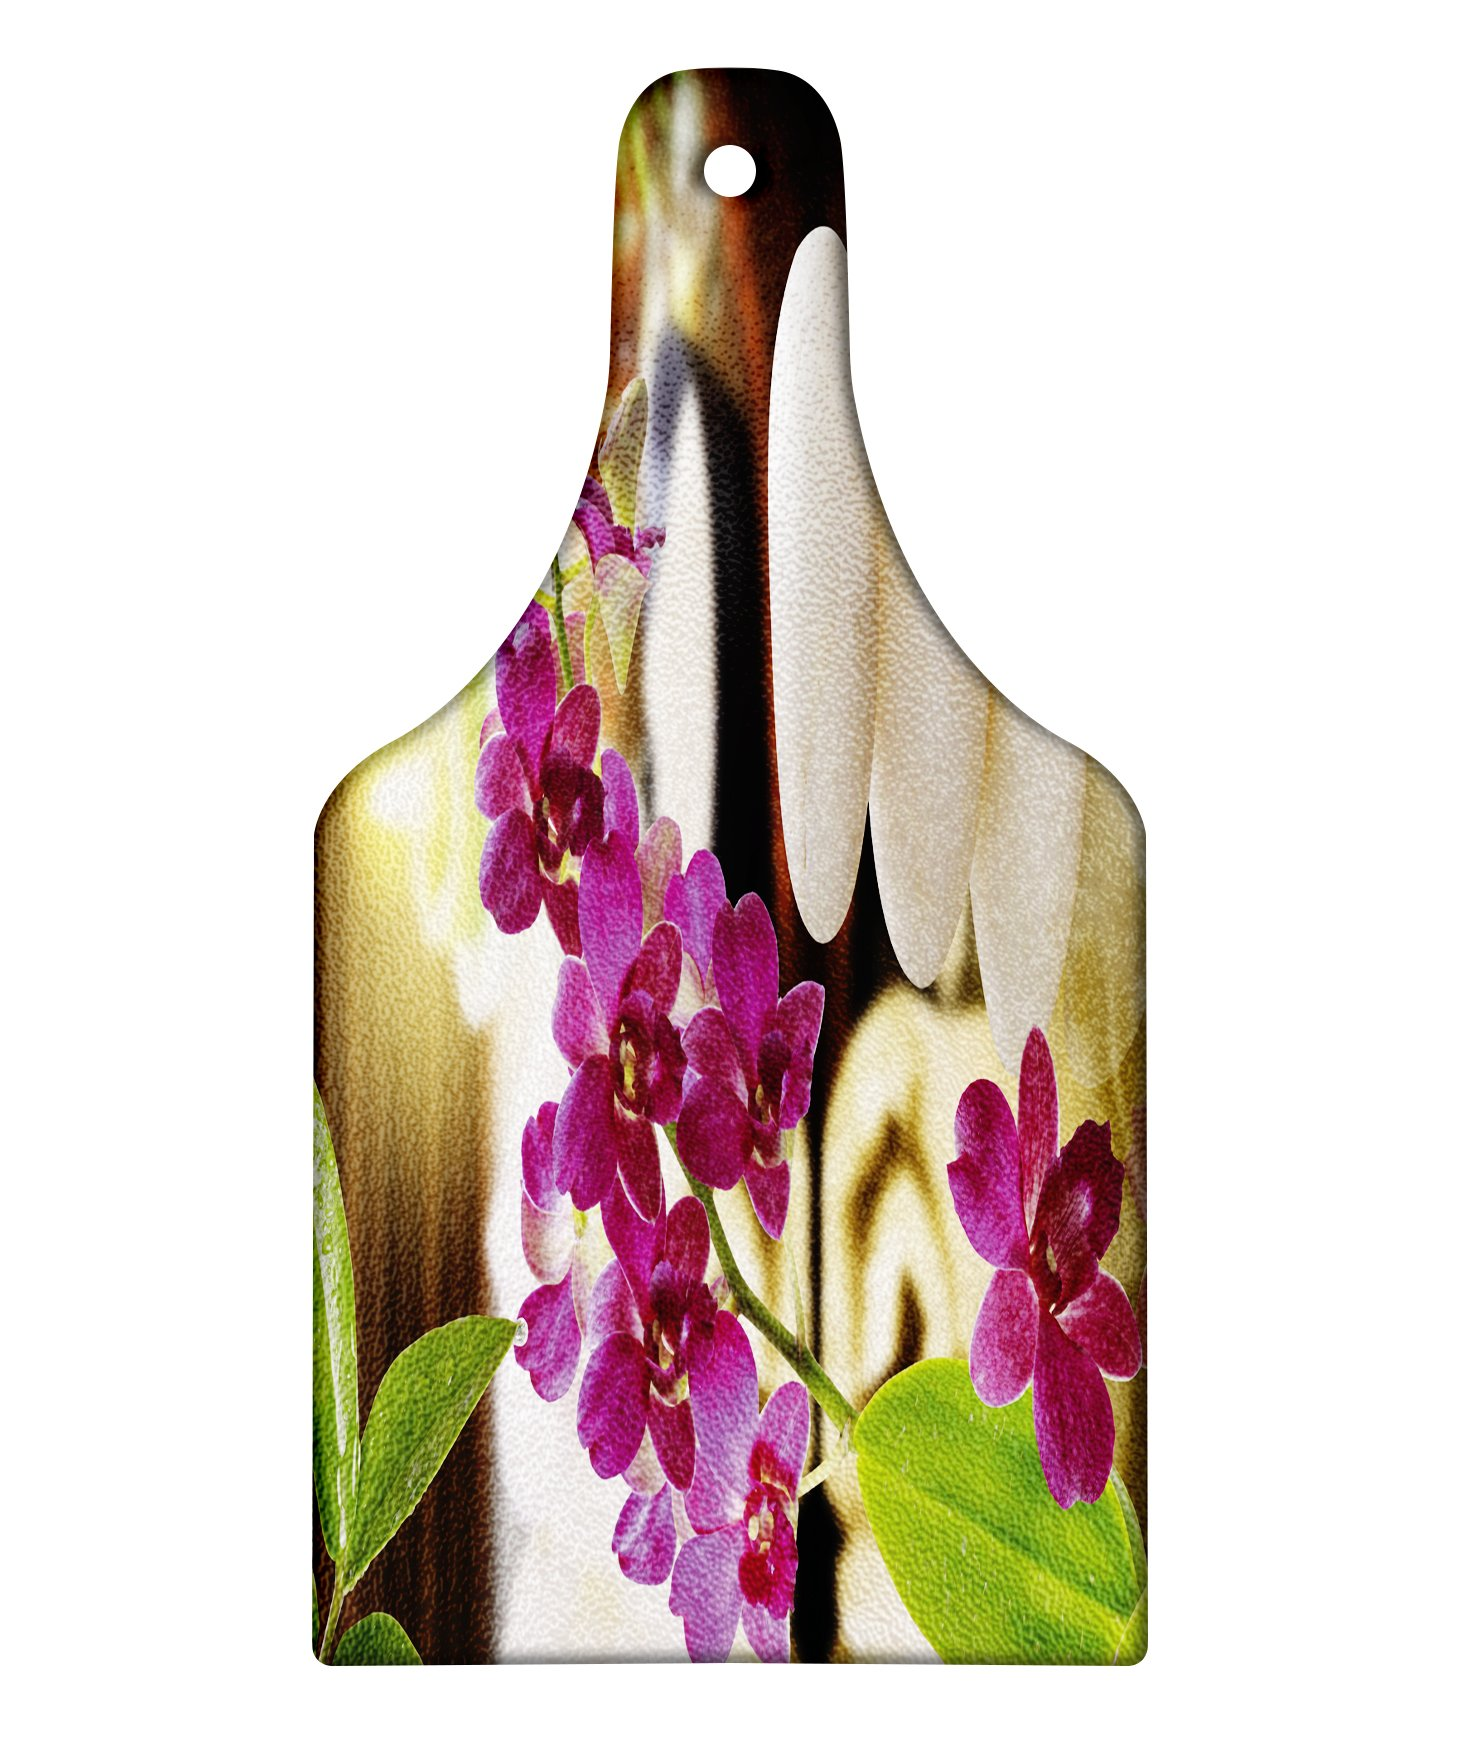 Lunarable Spa Cutting Board, Refreshing Spa Day with Stones Herbal Salts and The Exotic Flowers Print, Decorative Tempered Glass Cutting and Serving Board, Wine Bottle Shape, Purple White and Green